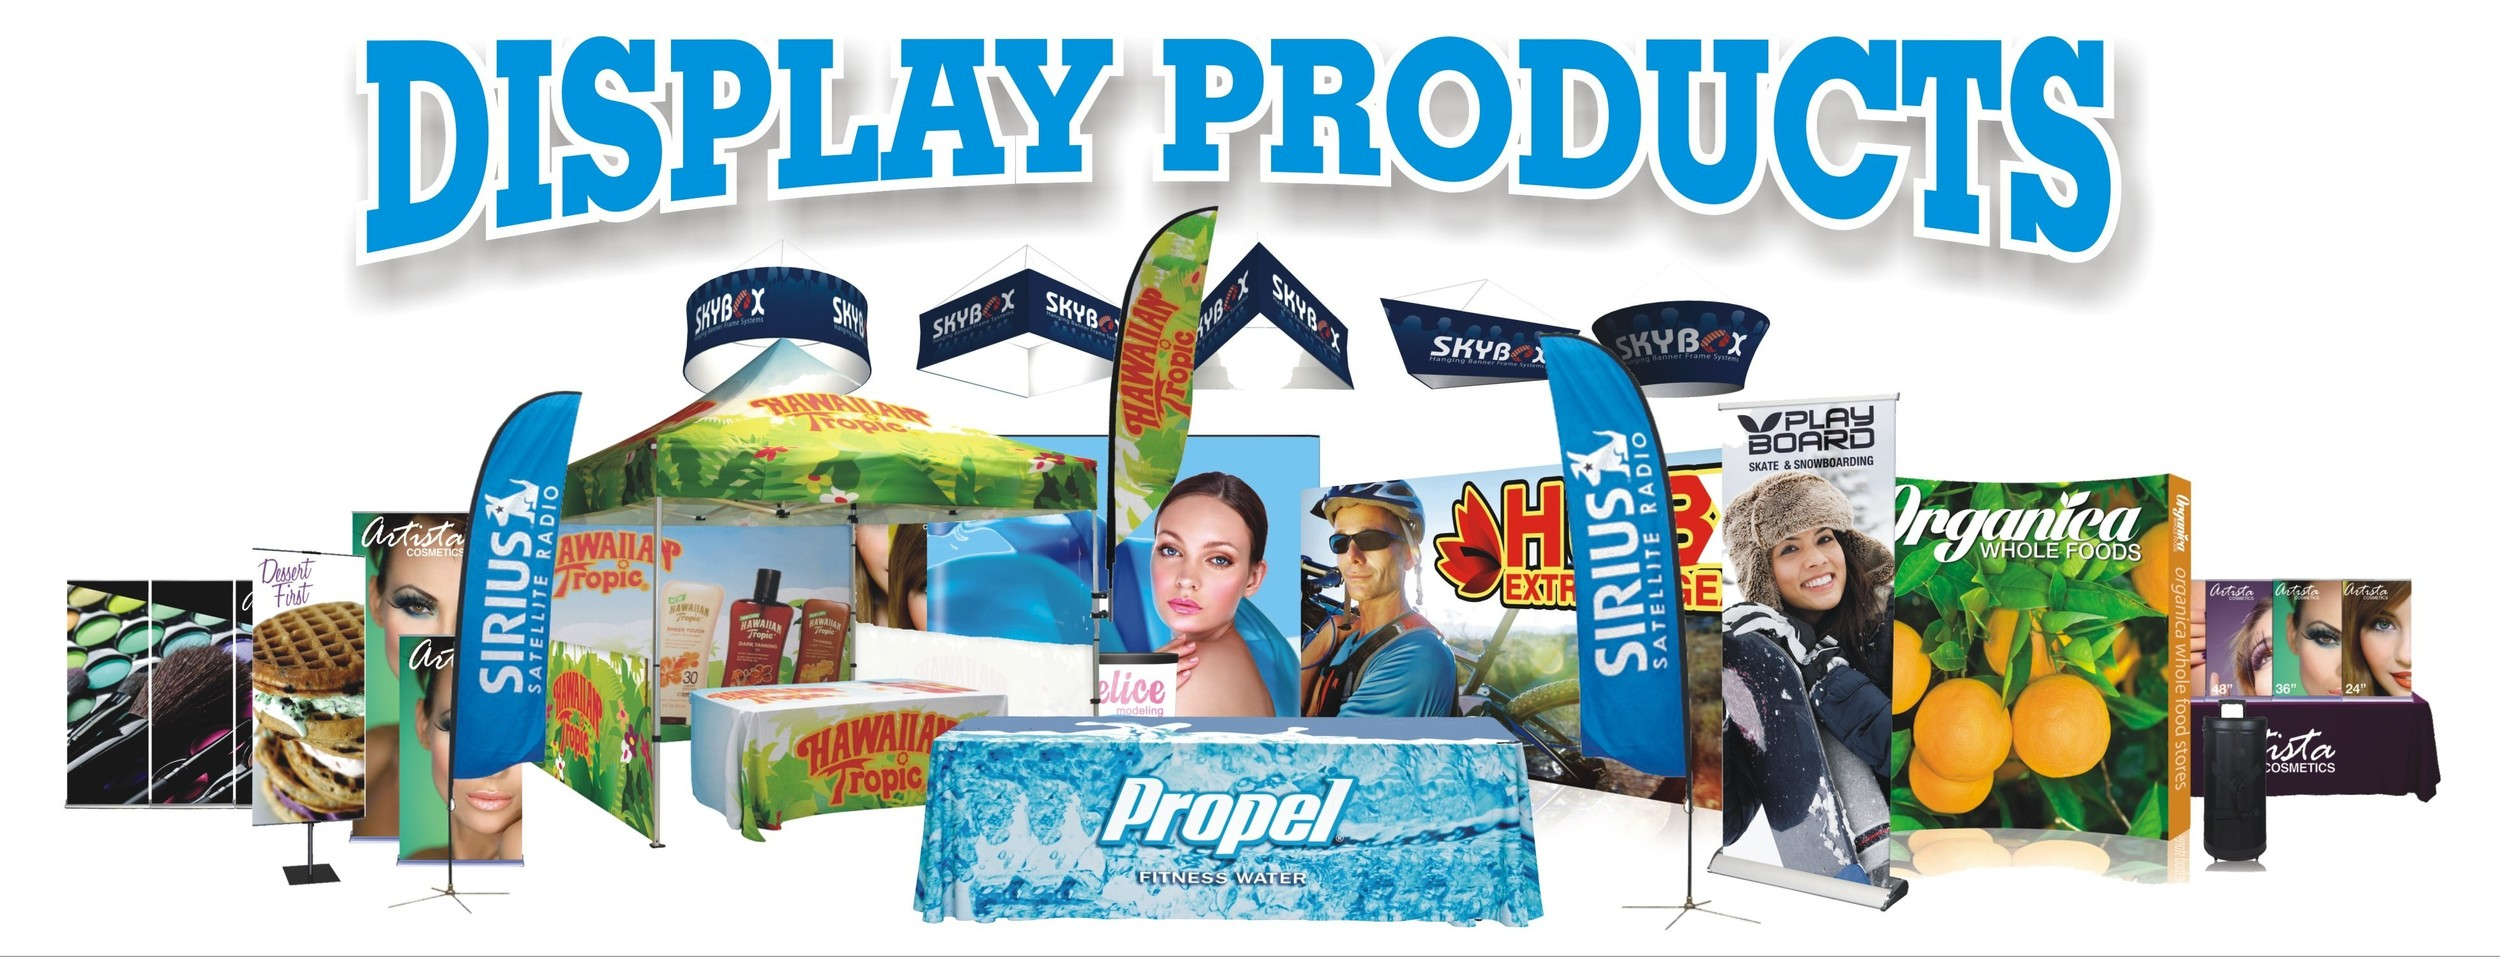 K&M Graphics  has added a variety of signs and display products to our production line. We now offer quality outdoor feather and teardrop banners, outdoor pop up displays, retractable banners and stands,indoor hanging banners and much more. If you go to  kmgraphics.org  and click on the Display Products image on the home page, it will take you to our new catalog. Take a look and feel free to contact us for a free quote. From signs, vehicle wraps, and now display products, we have your graphics needs covered.